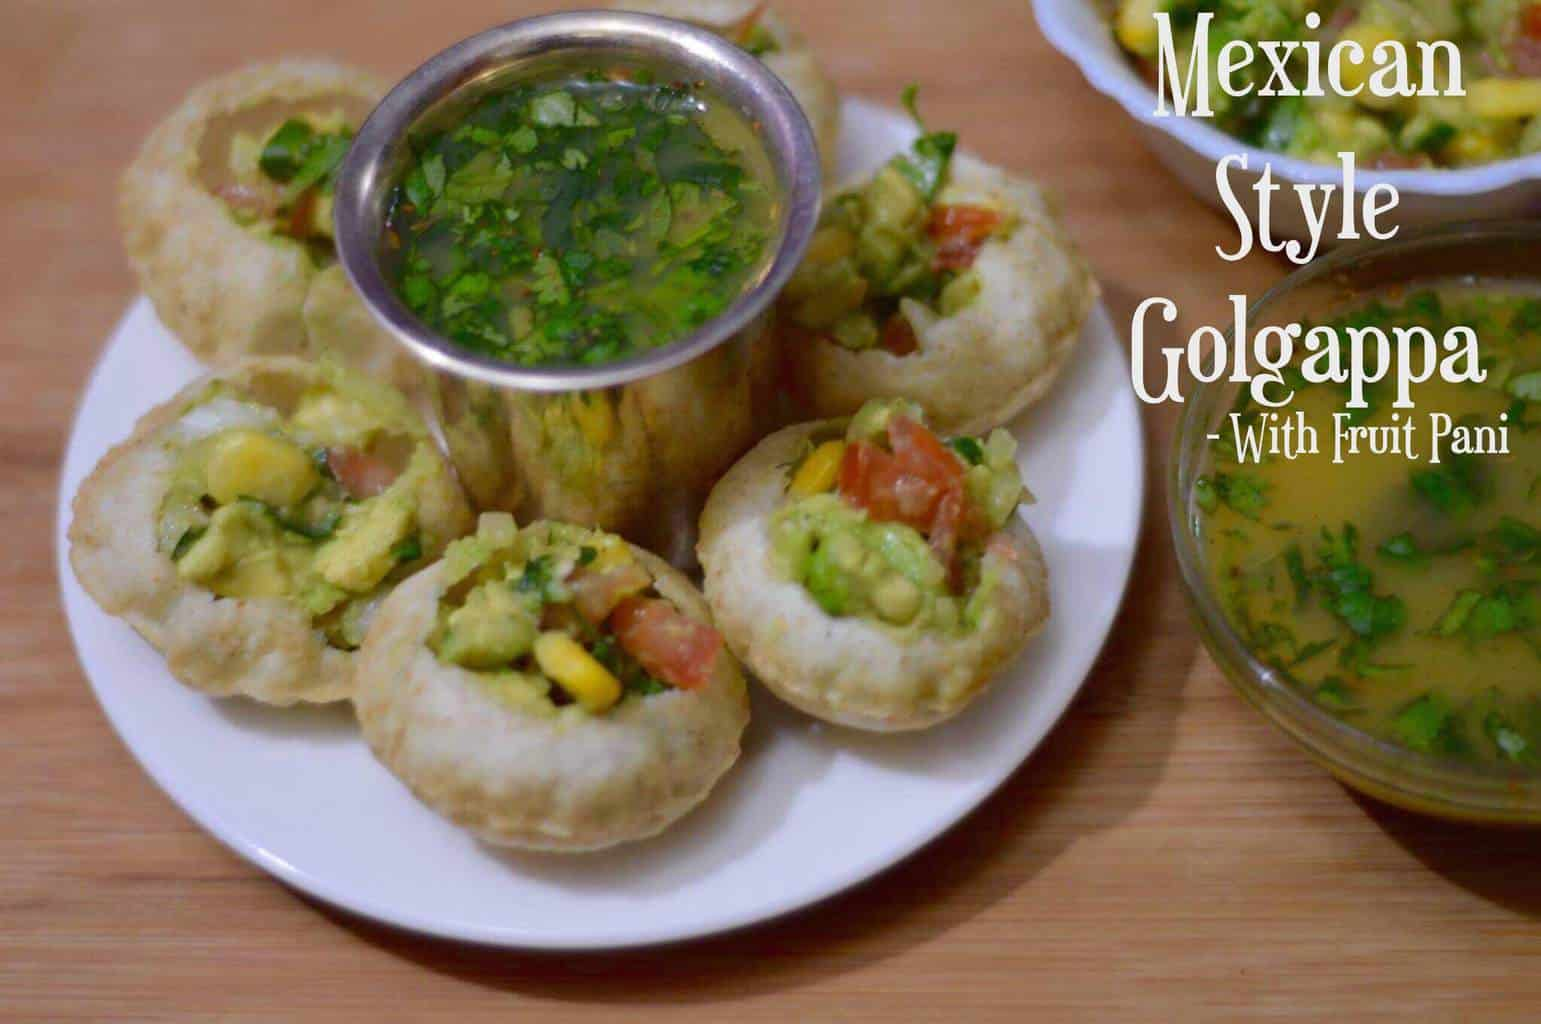 Mexican Style Golgappa with Fruit Pani|Pani Puri Mexican Style is a indo-mexican fusion twist on famous Indian classic street food pani puri.